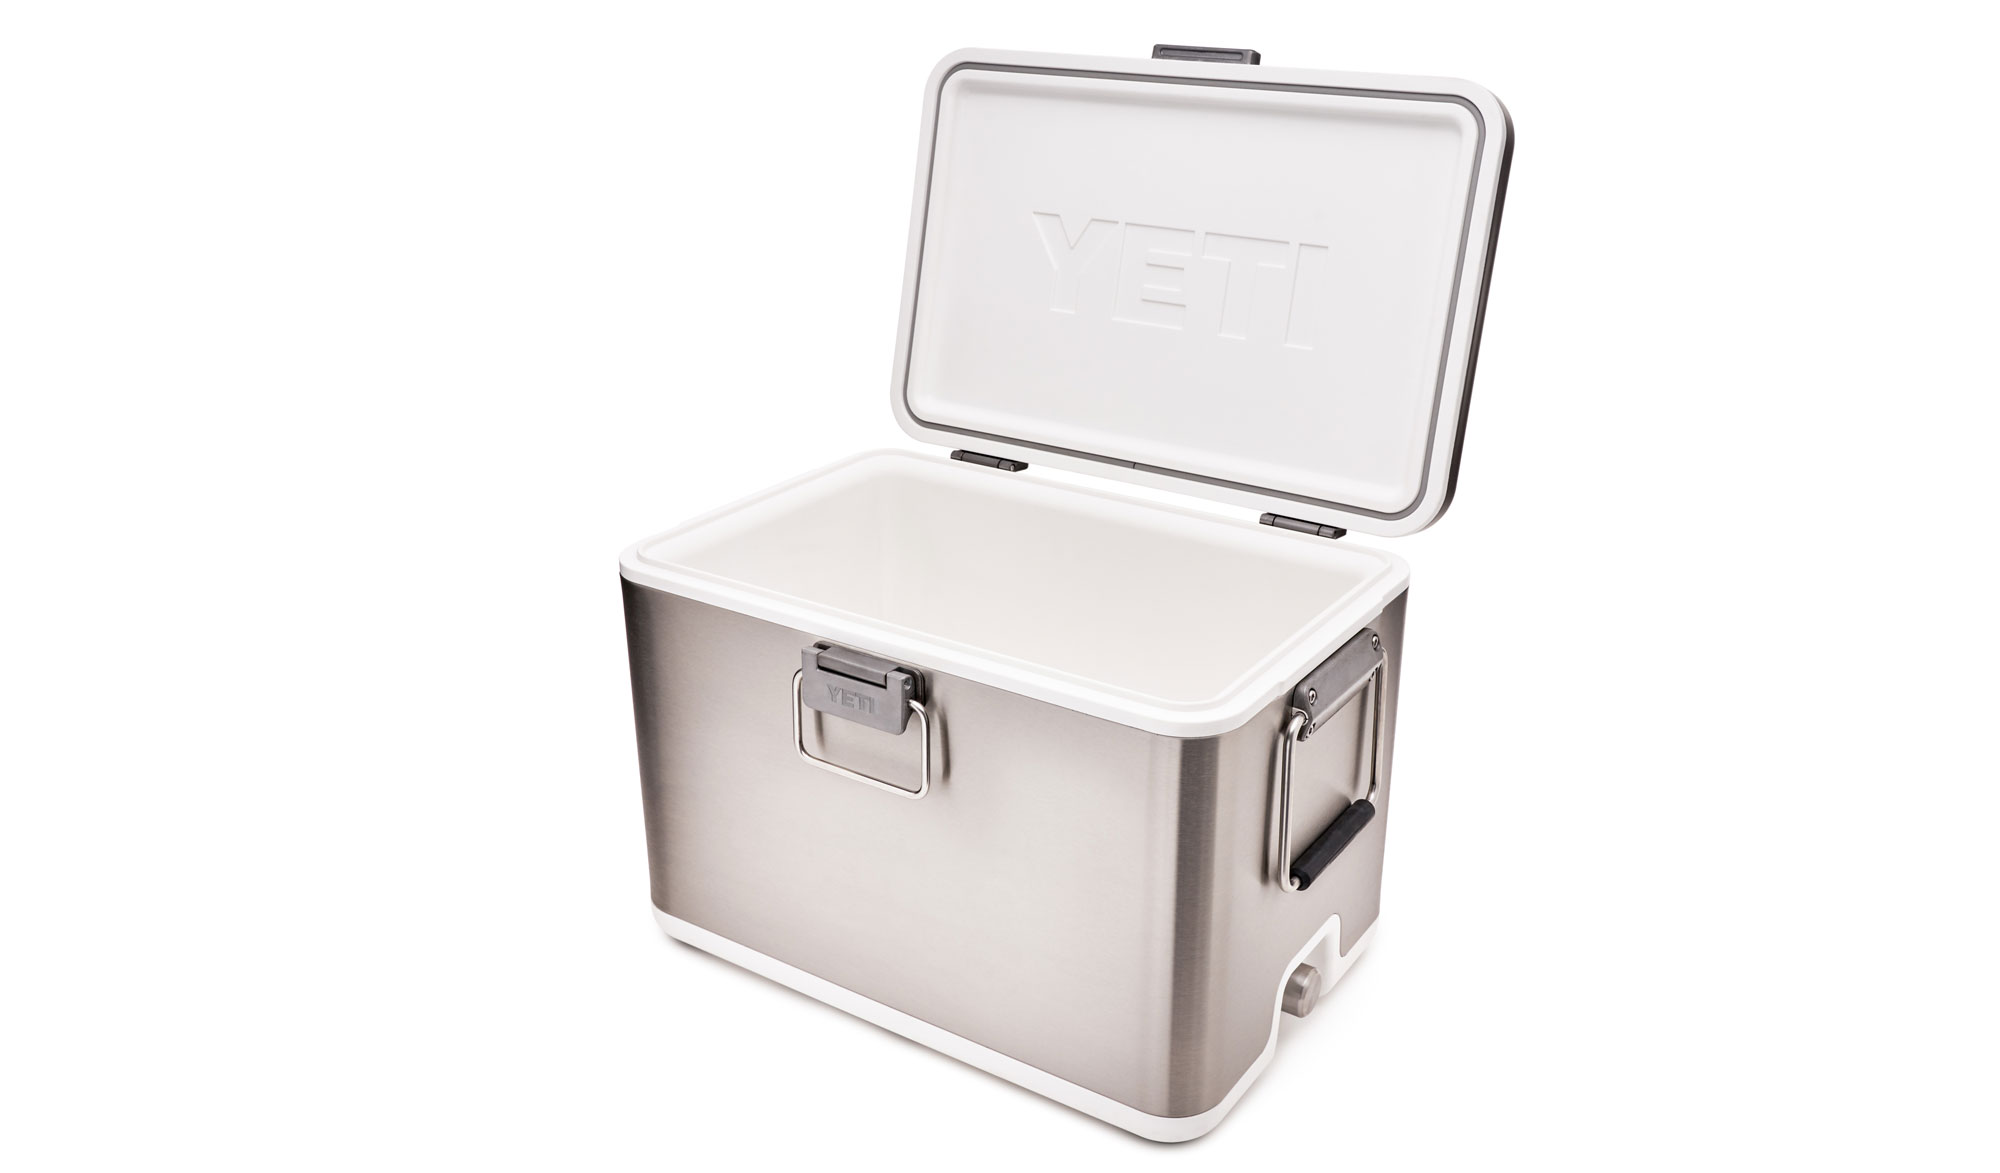 Gear News: YETI Reveals All-New 'V Series' Hard-Sided Cooler